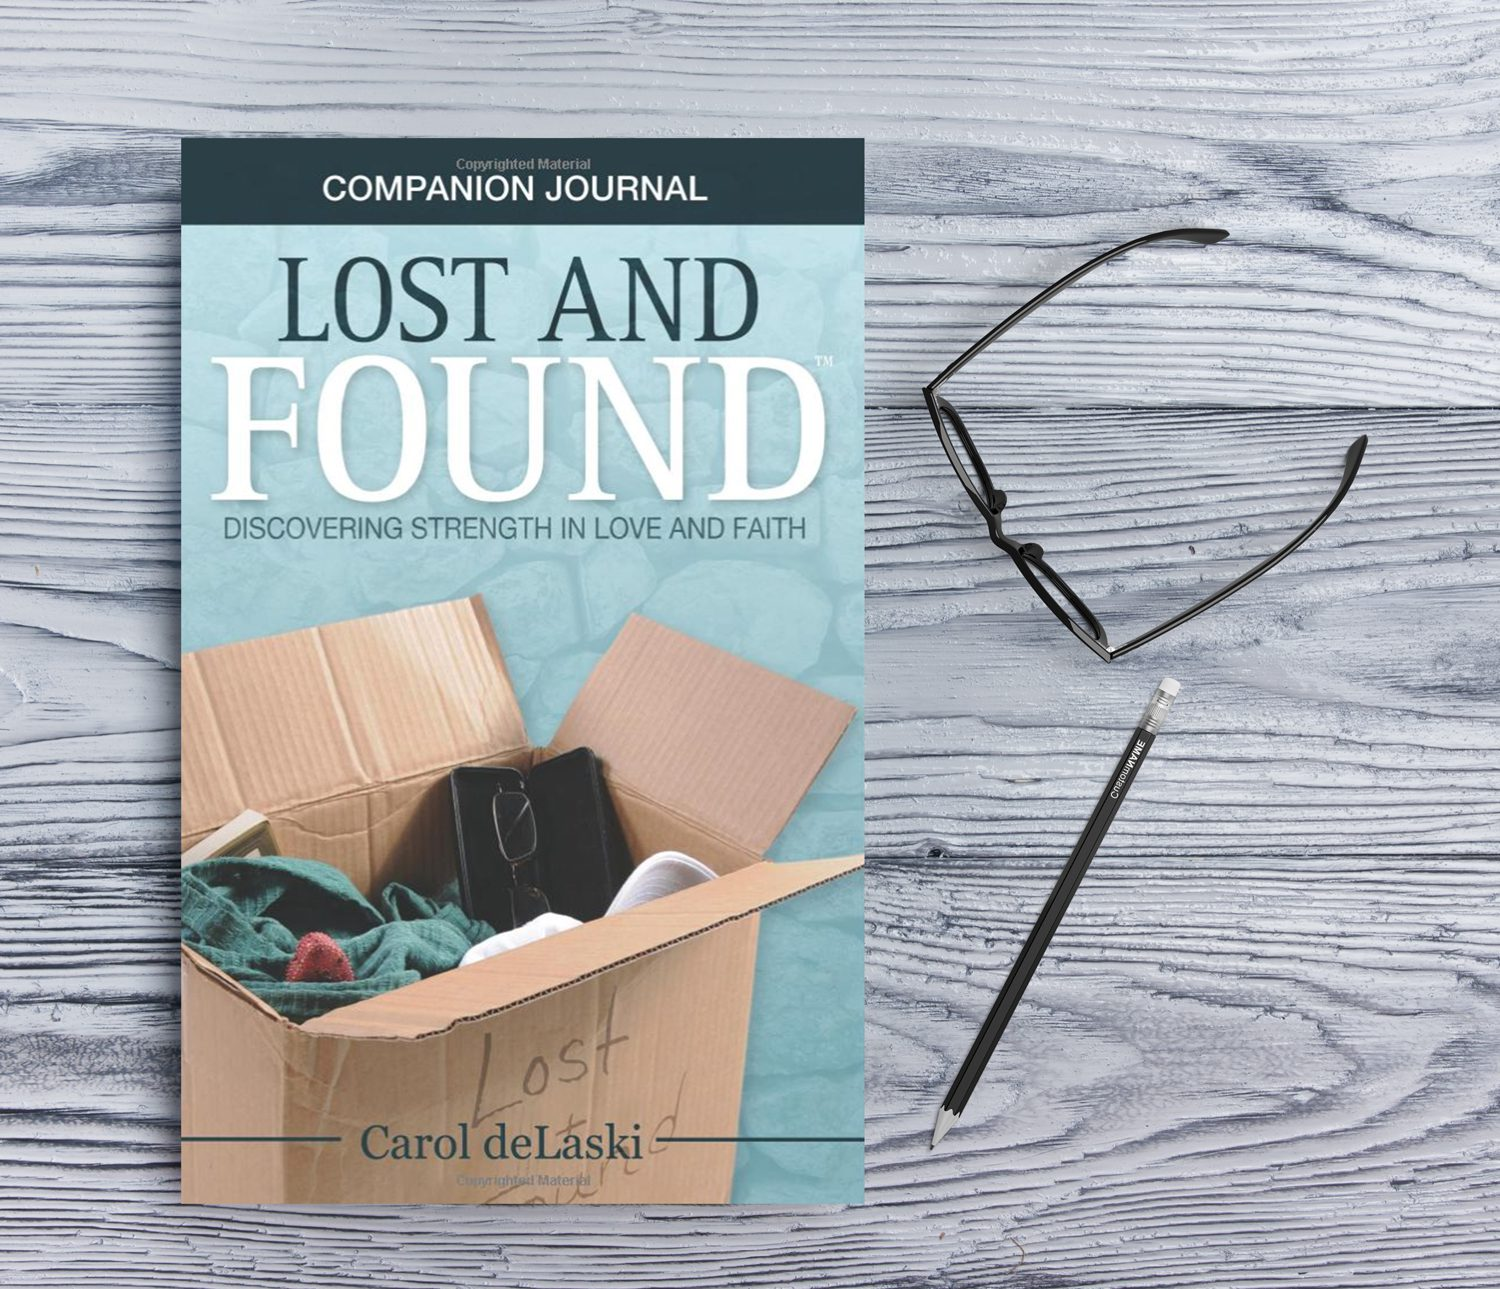 Lost and Found Companion Journal